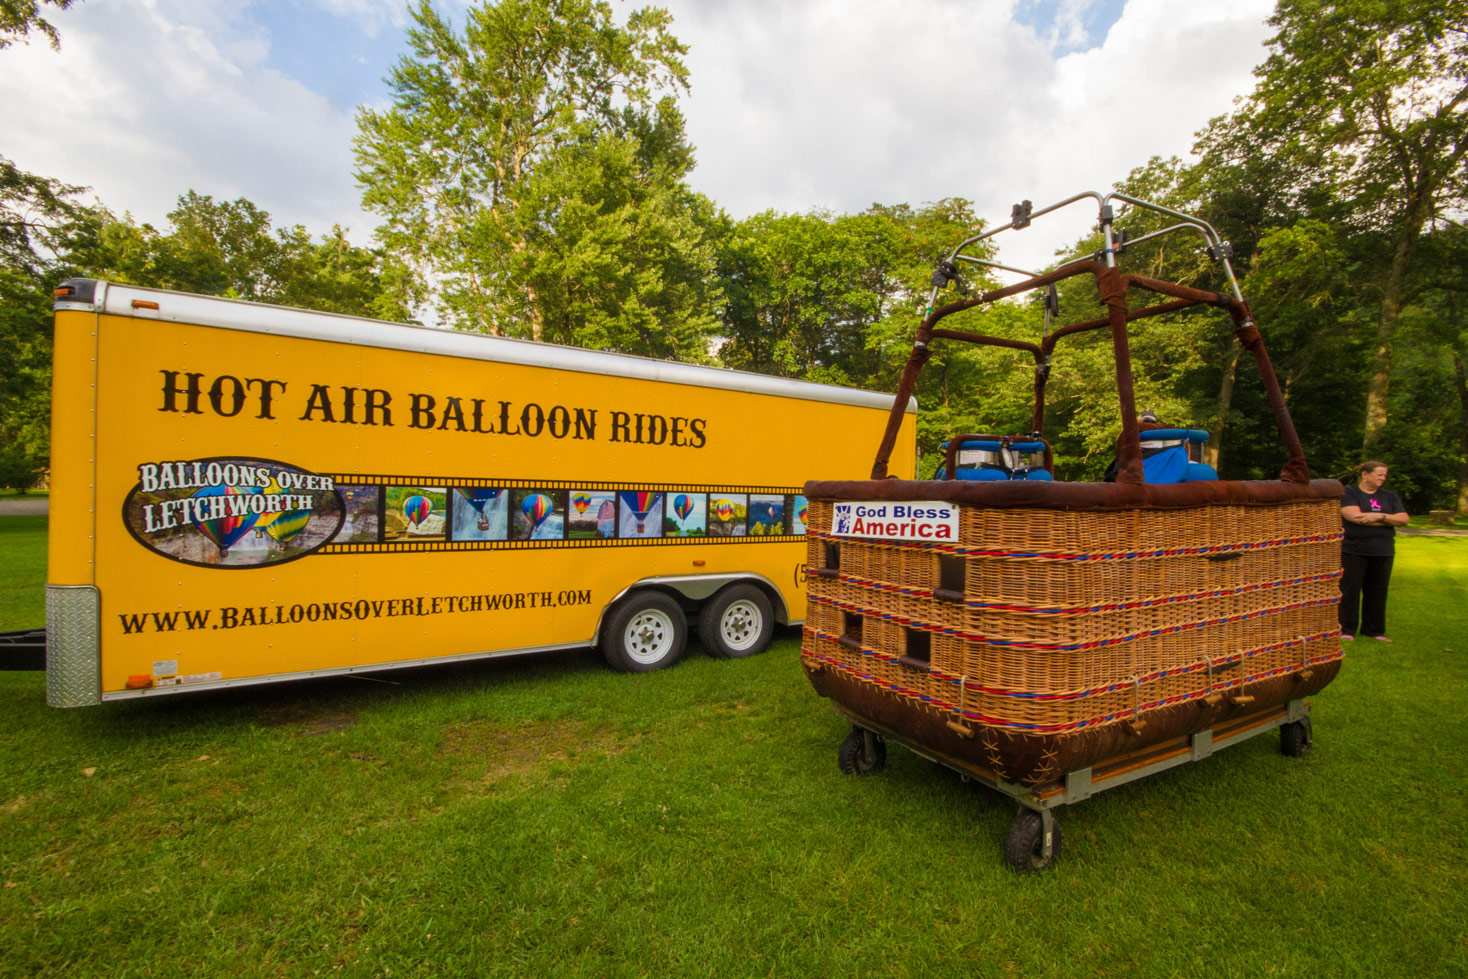 Balloons over Letchworth basket and chase truck in Letchworth State Park in New York State